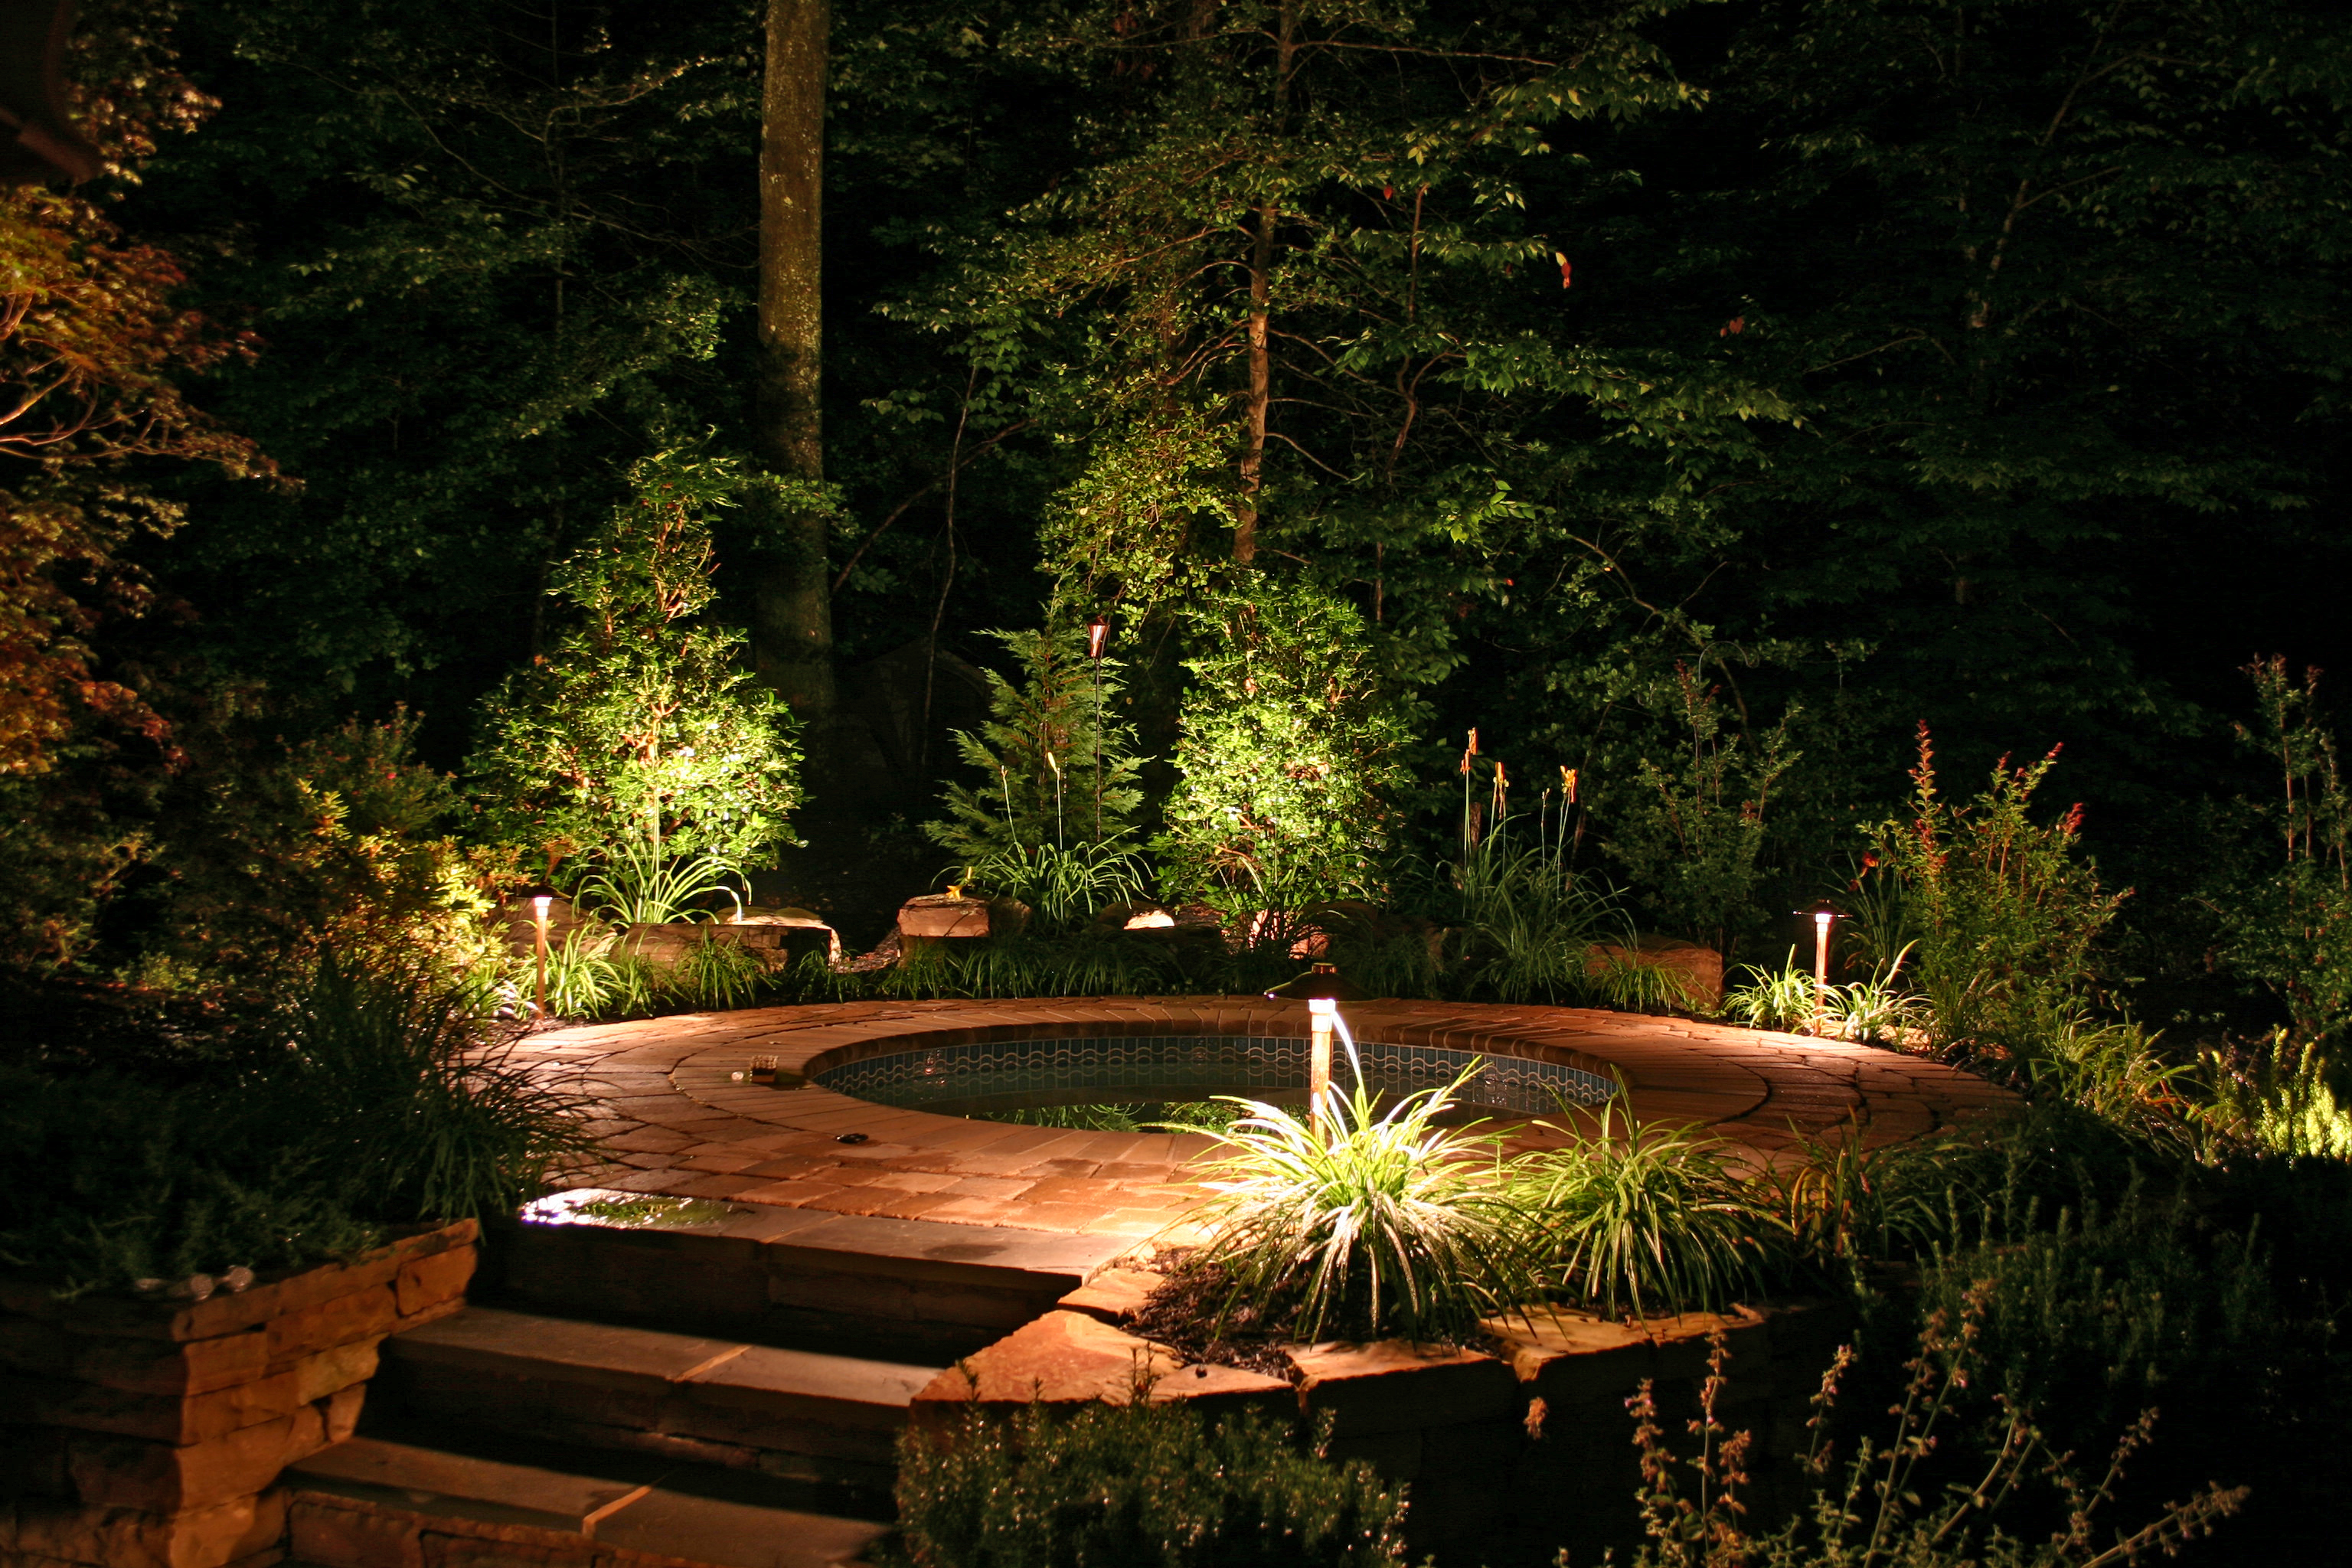 Pool And Jacuzzi Steps Propery Lit By Outdoor Lighting